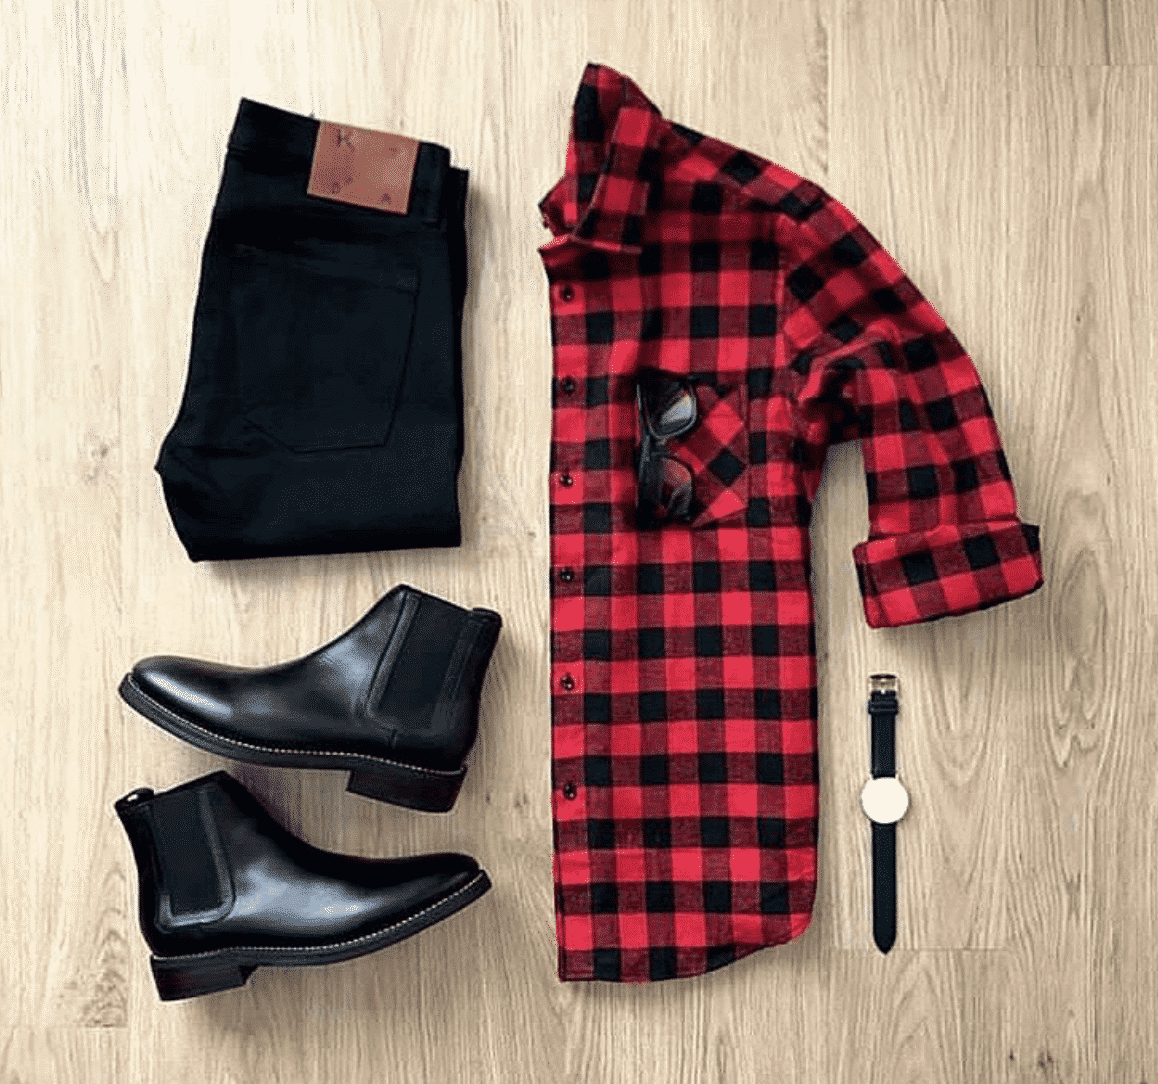 Screen-Shot-2017-11-11-at-8.07.53-PM Men's Business Casual Outfits-27 Ideas to Dress Business Casual